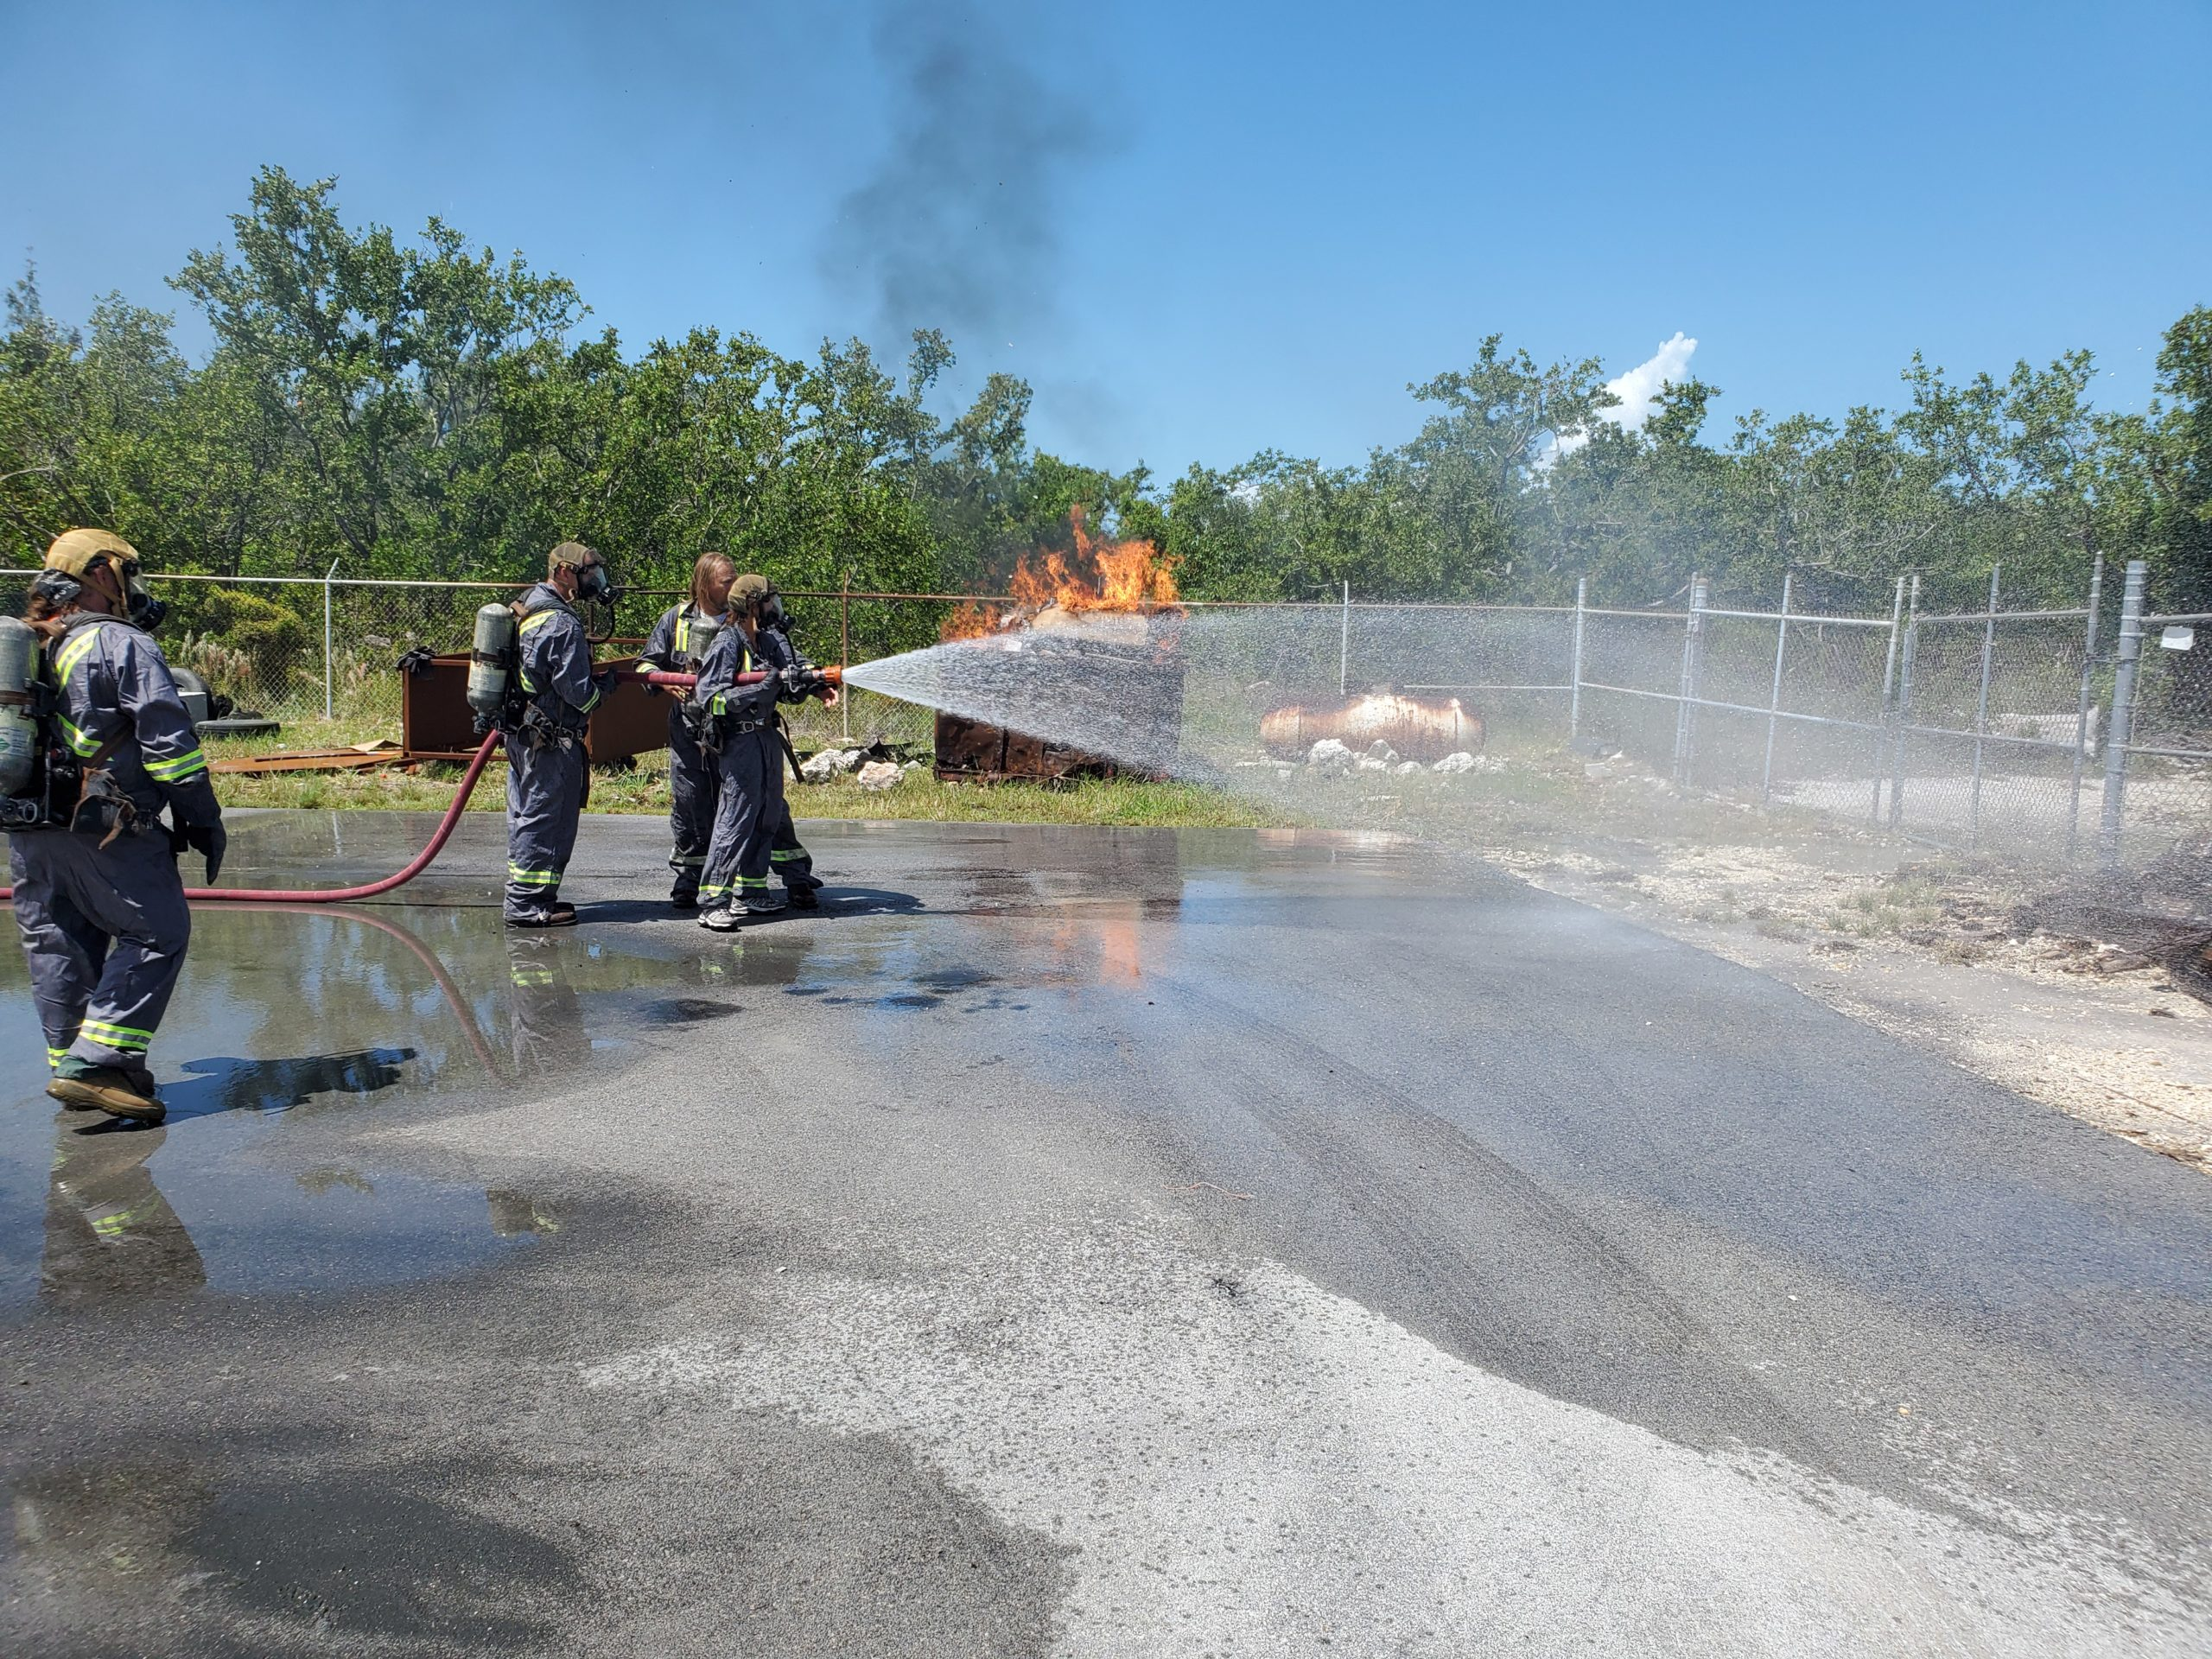 STCW Basic Safety Training (BST) - 5 day and blended 2 day - Coconut Grove